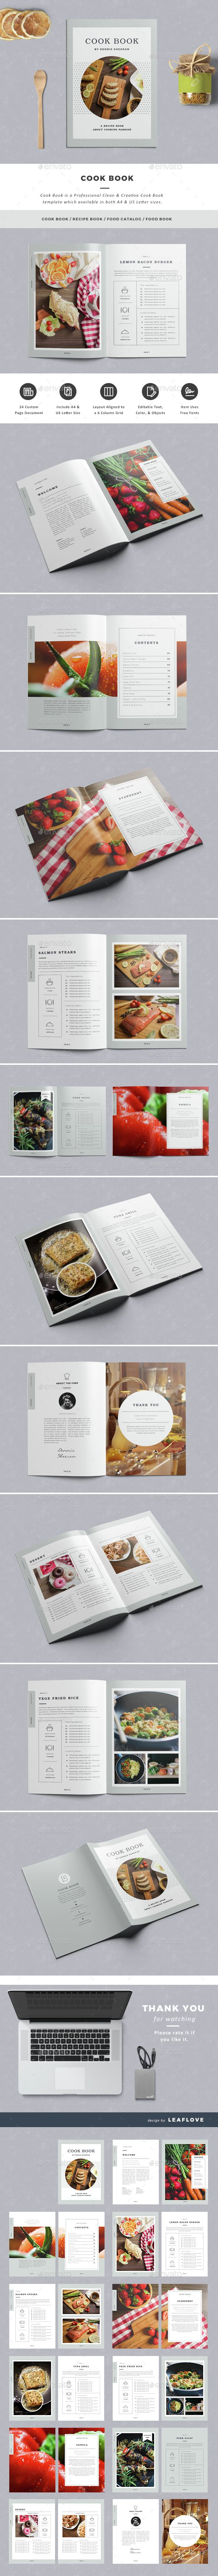 Lovely 100 Greatest Resume Words Thin 101 Modern Resume Samples Clean 1st Birthday Invitations Templates 2013 Resume Writing Trends Young 2014 Calendar Template Free Orange2014 Monthly Calendar Template 25  Best Ideas About Cookbook Template On Pinterest | Recipe Books ..